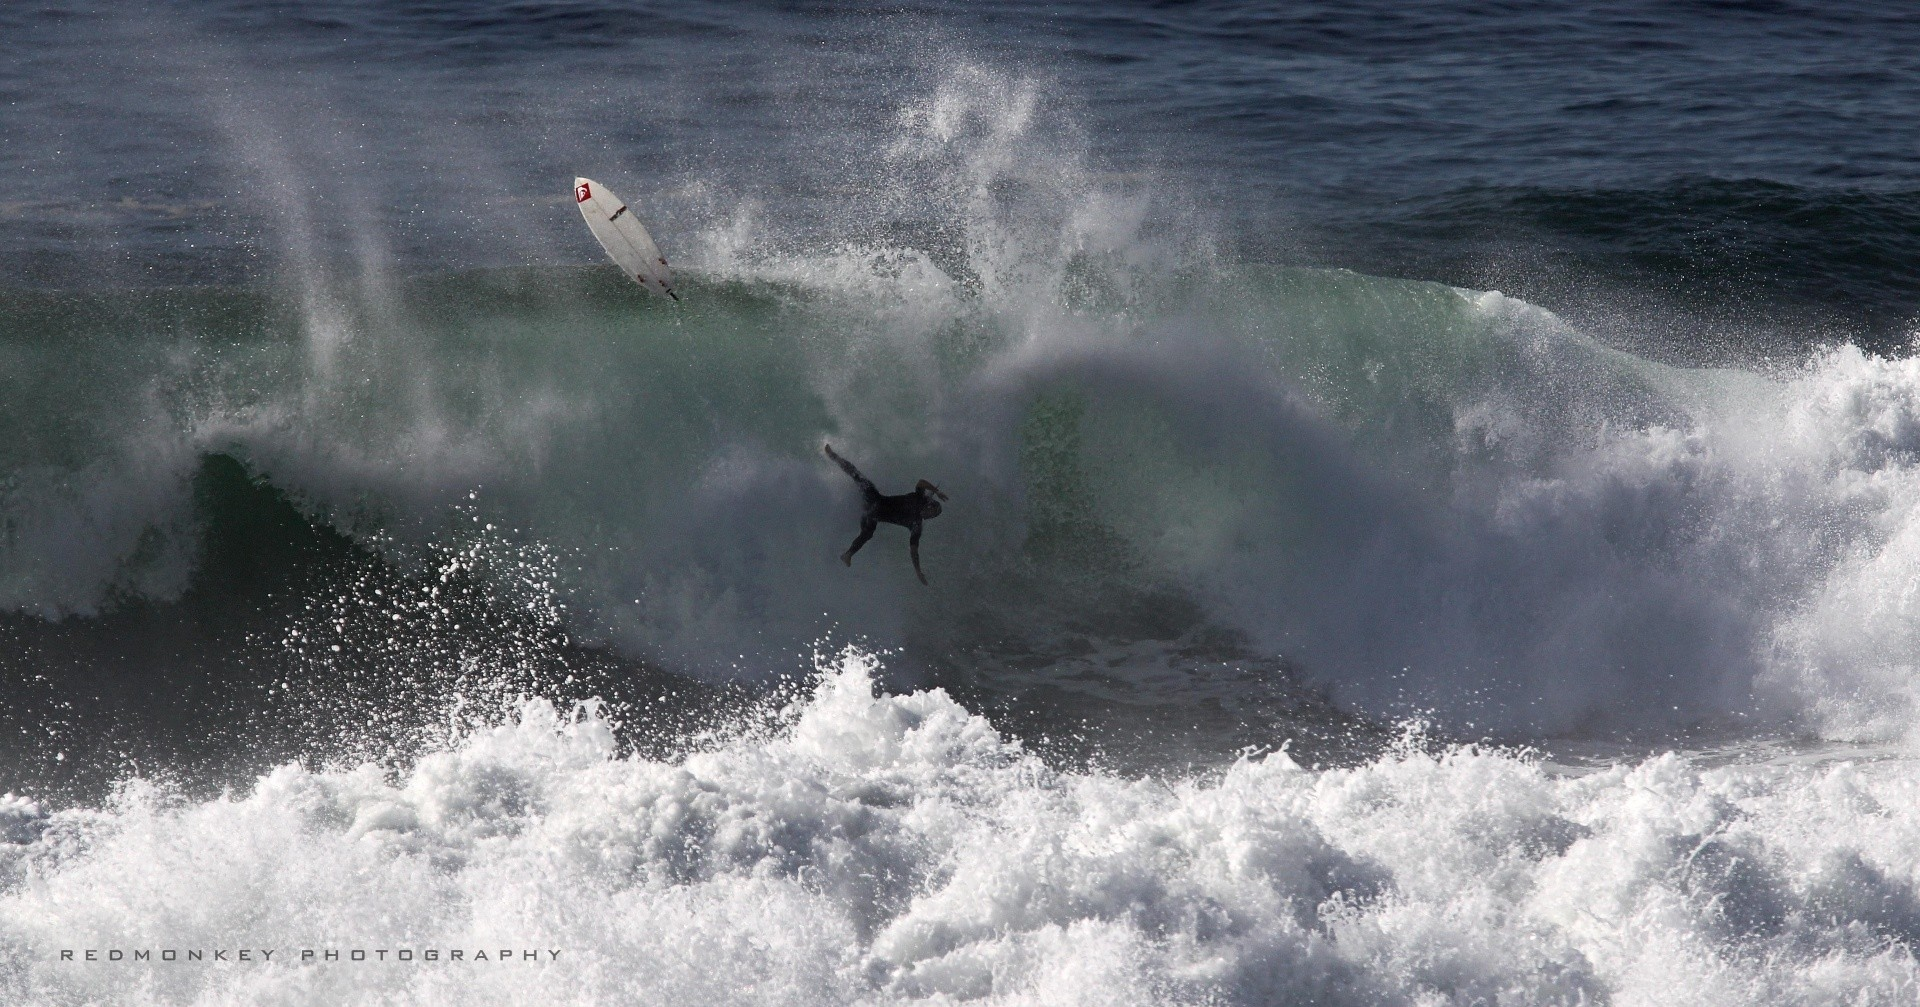 Grant Sproule's photo of Newcastle